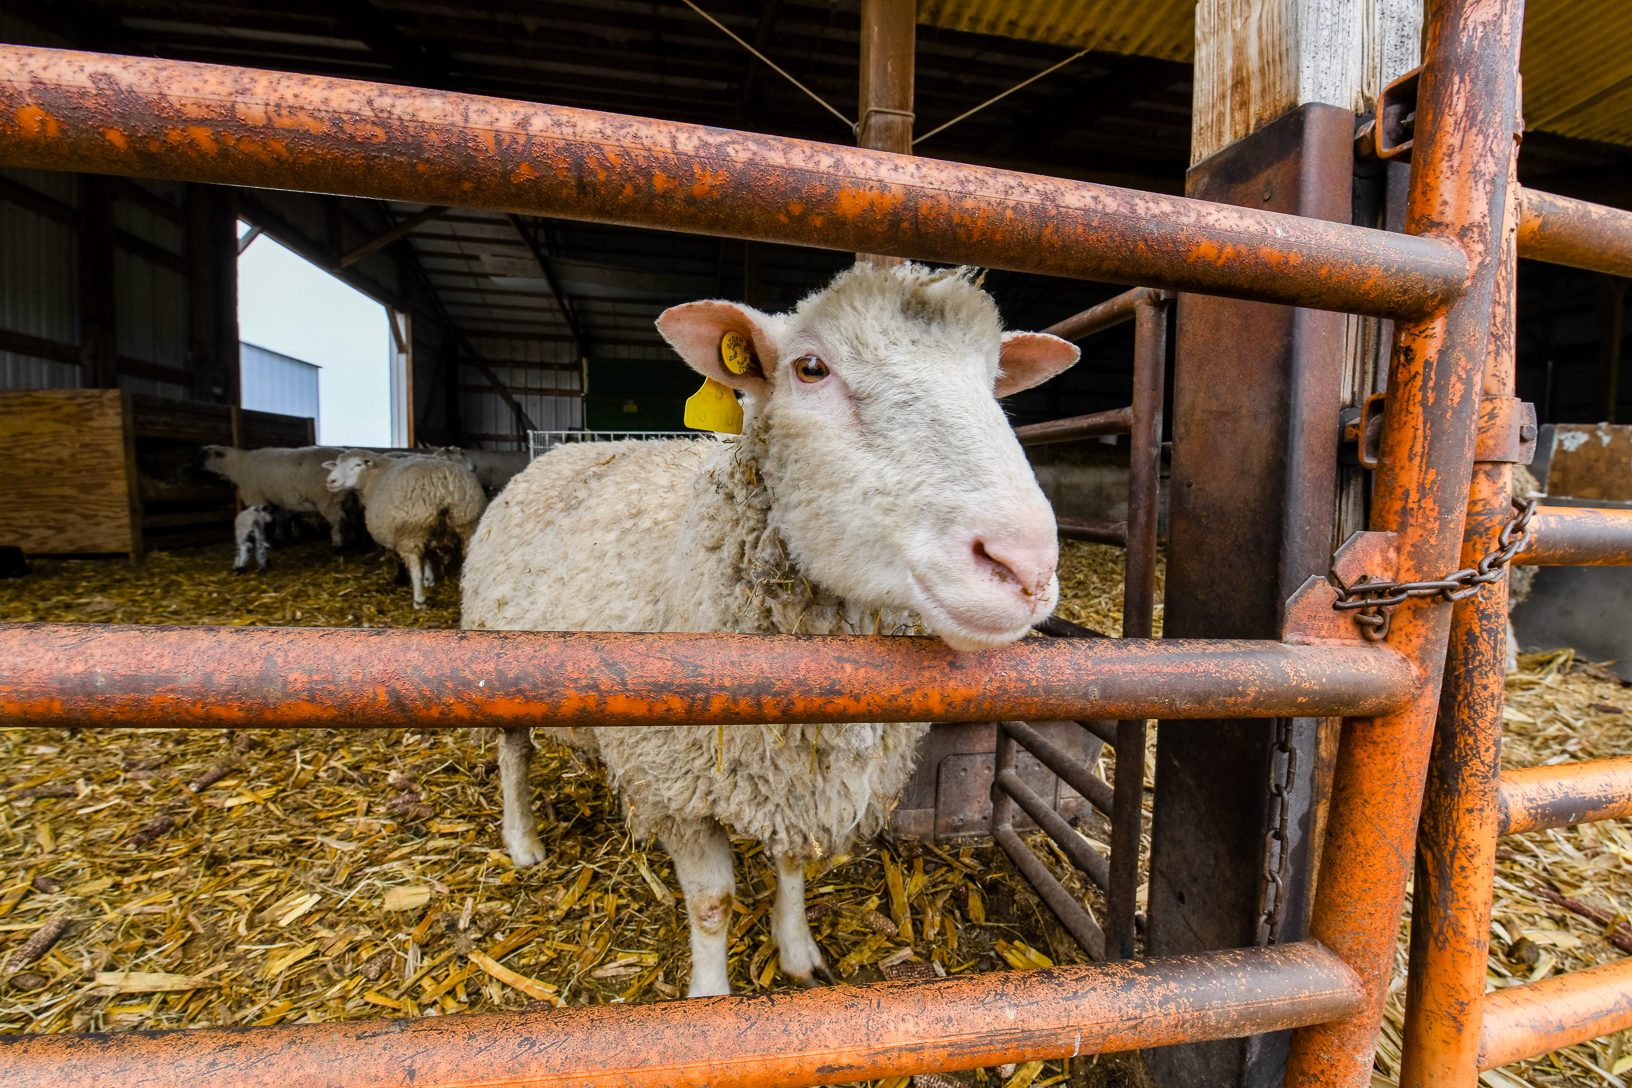 An expecting ewe looks through the gate at Walton's farm as some of his newborn lambs nurse in the background.